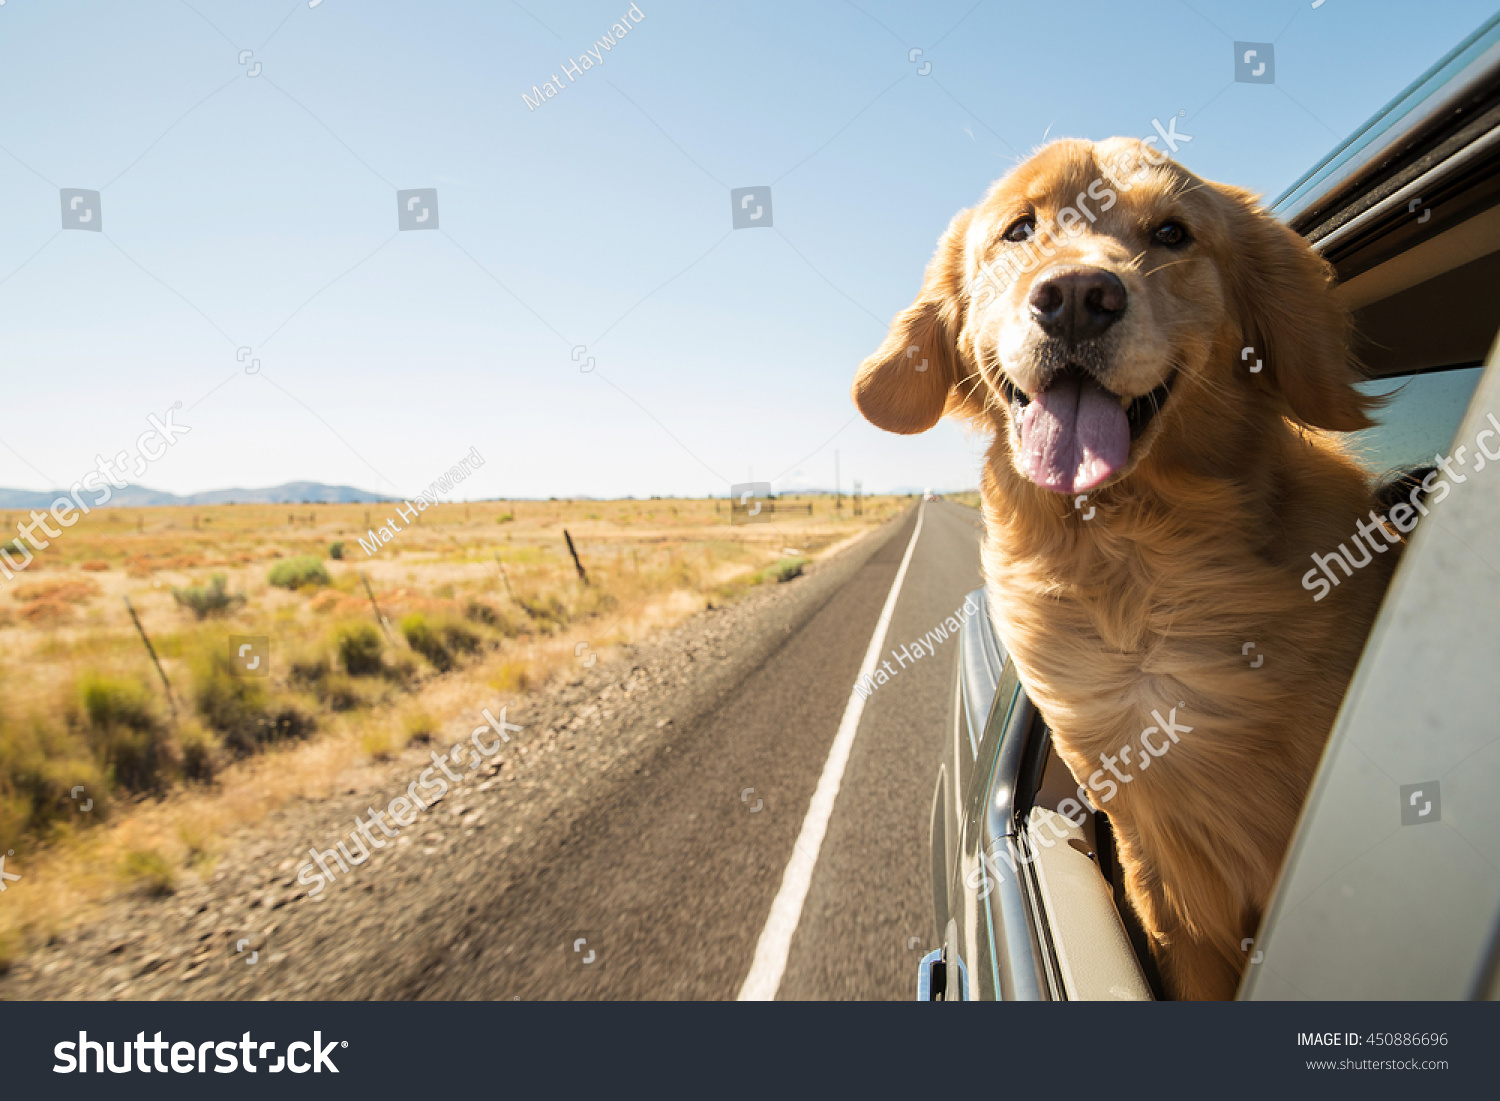 Golden Retriever Dog on a road trip #450886696